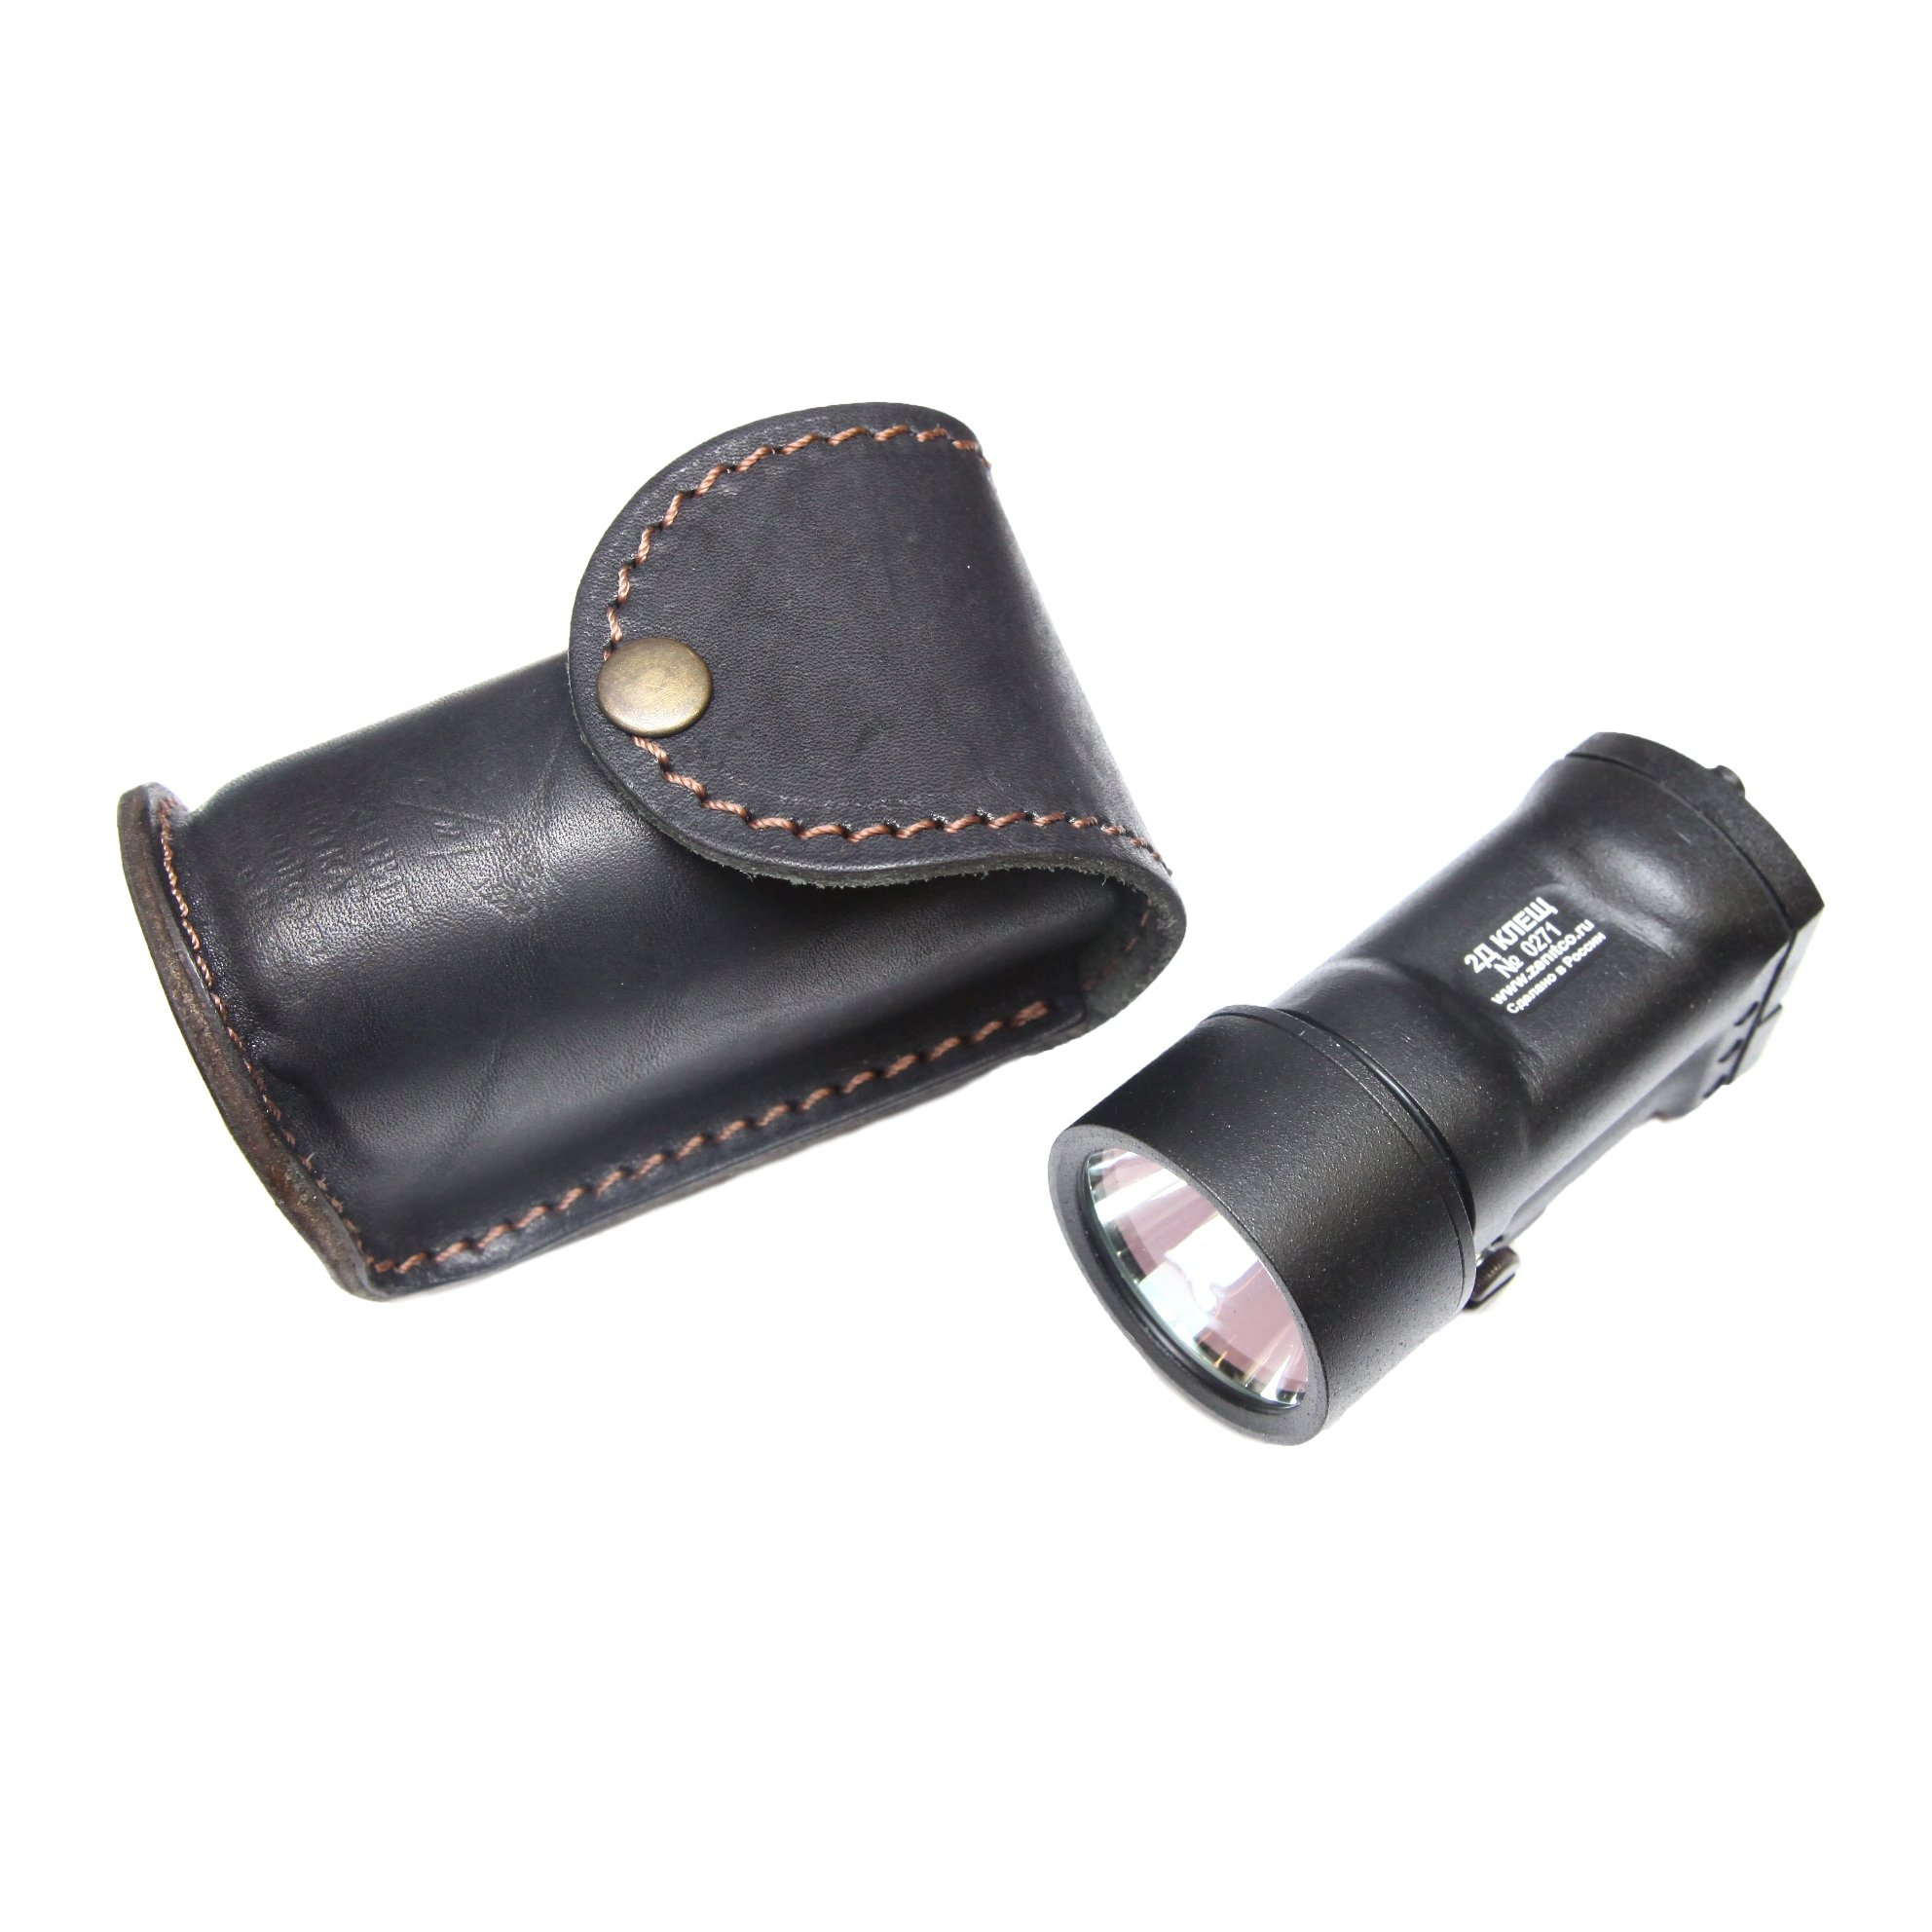 ZenitCO 2D Klesh tactical flashlight